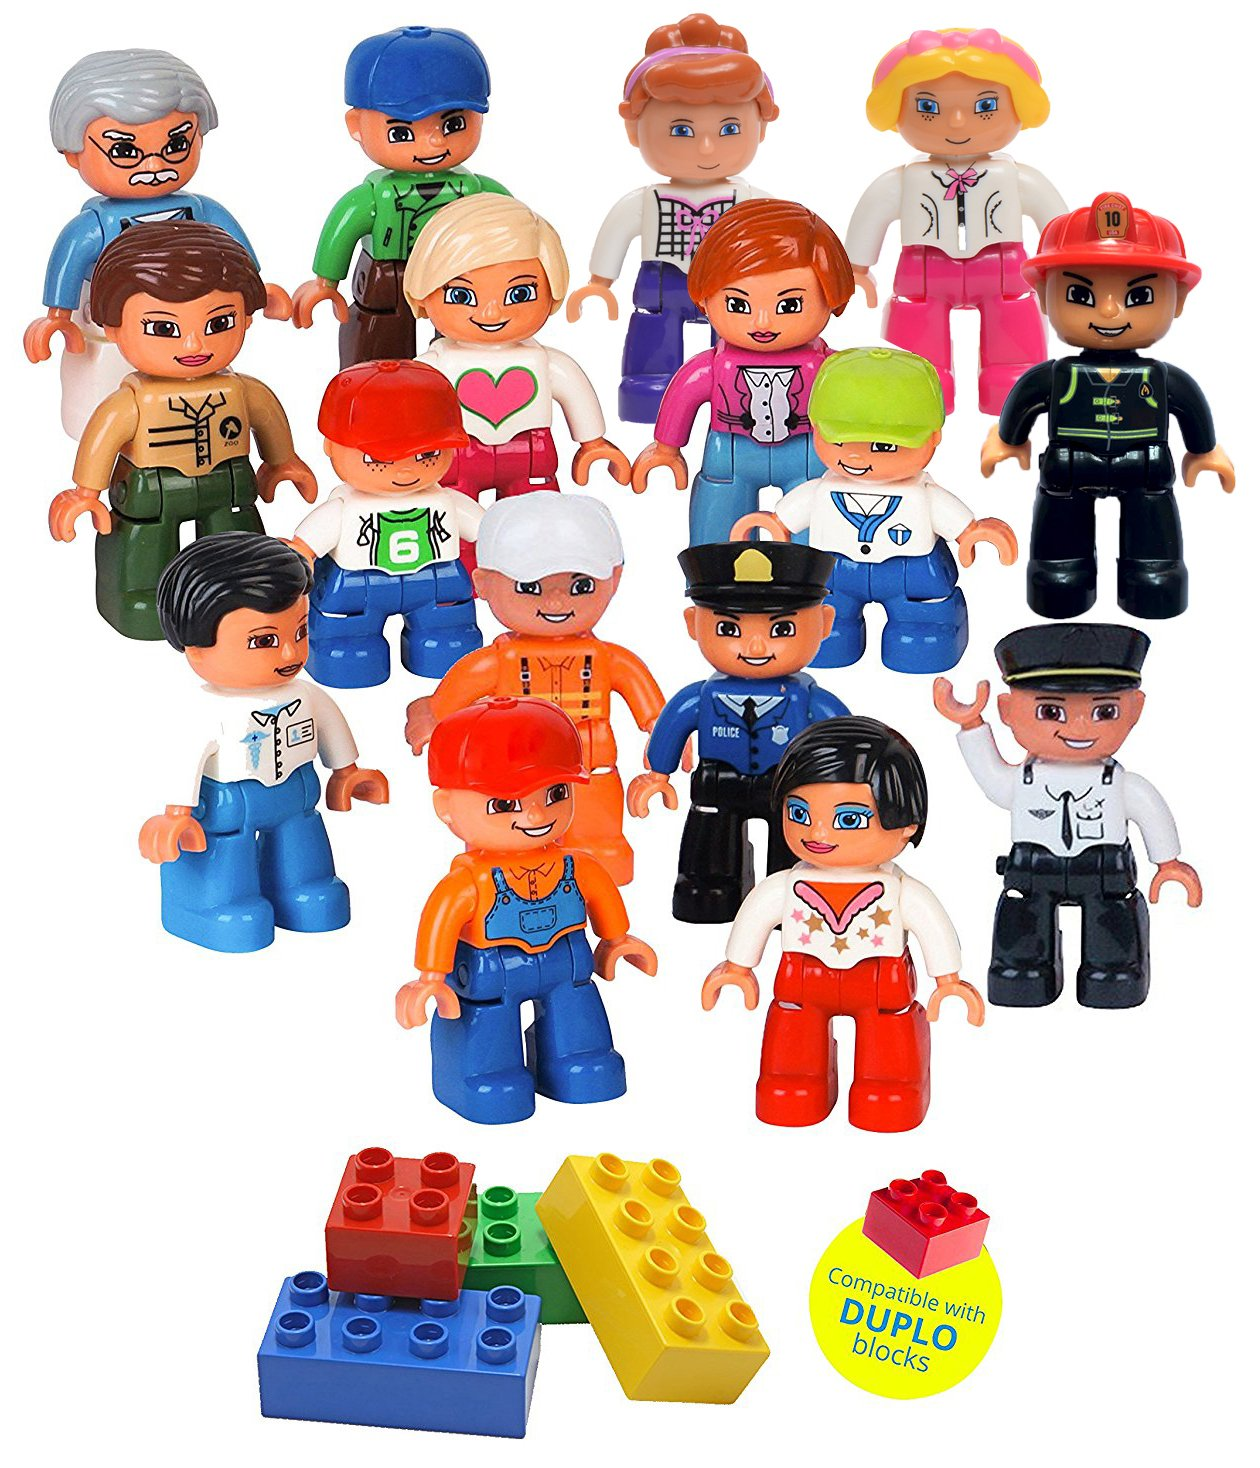 Community Figures Set Lego Duplo Compatible 16 Pieces By Lp Toys- Includes Police Man, Pilot, Farmer, Construction Worker, Conductor, Nurse, Acrobat Girl, Female Zoo Keeper, Mom, Dad, Grand Pa, Kids and More Review